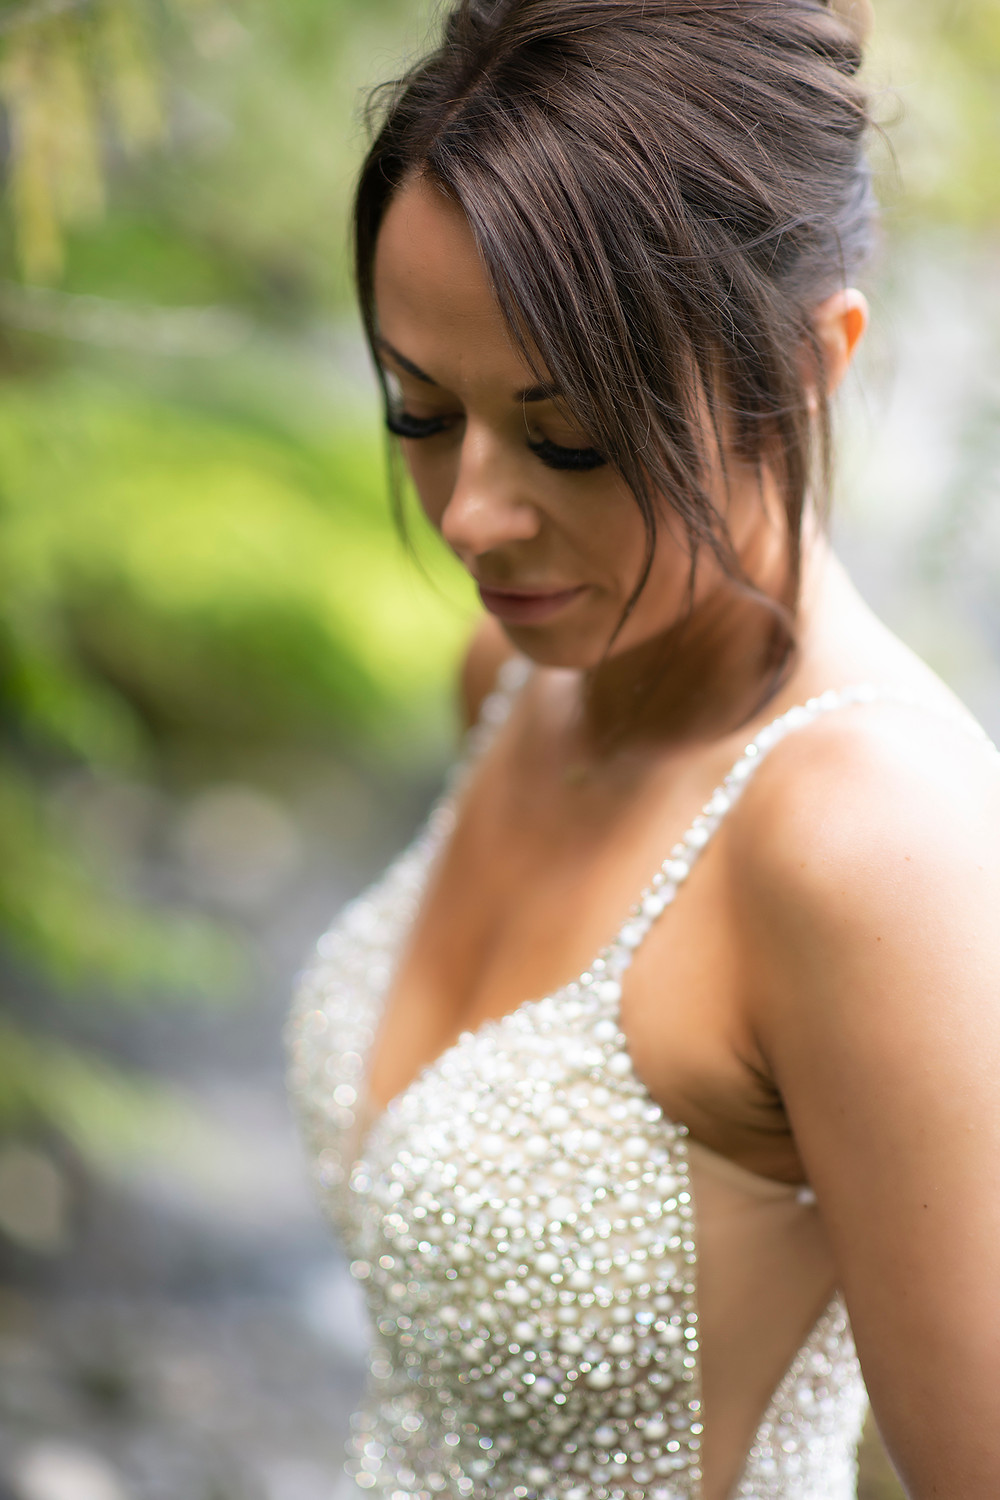 Stunning bride at an Newly weds kiss in the forest at an Couple embraces in the fporest at an Bride and groom have their first kiss at an Beautiful beach ceremony at an Bride and groom hold rings during an elopement in Tofino. Photographed by Kaitlyn Shea.